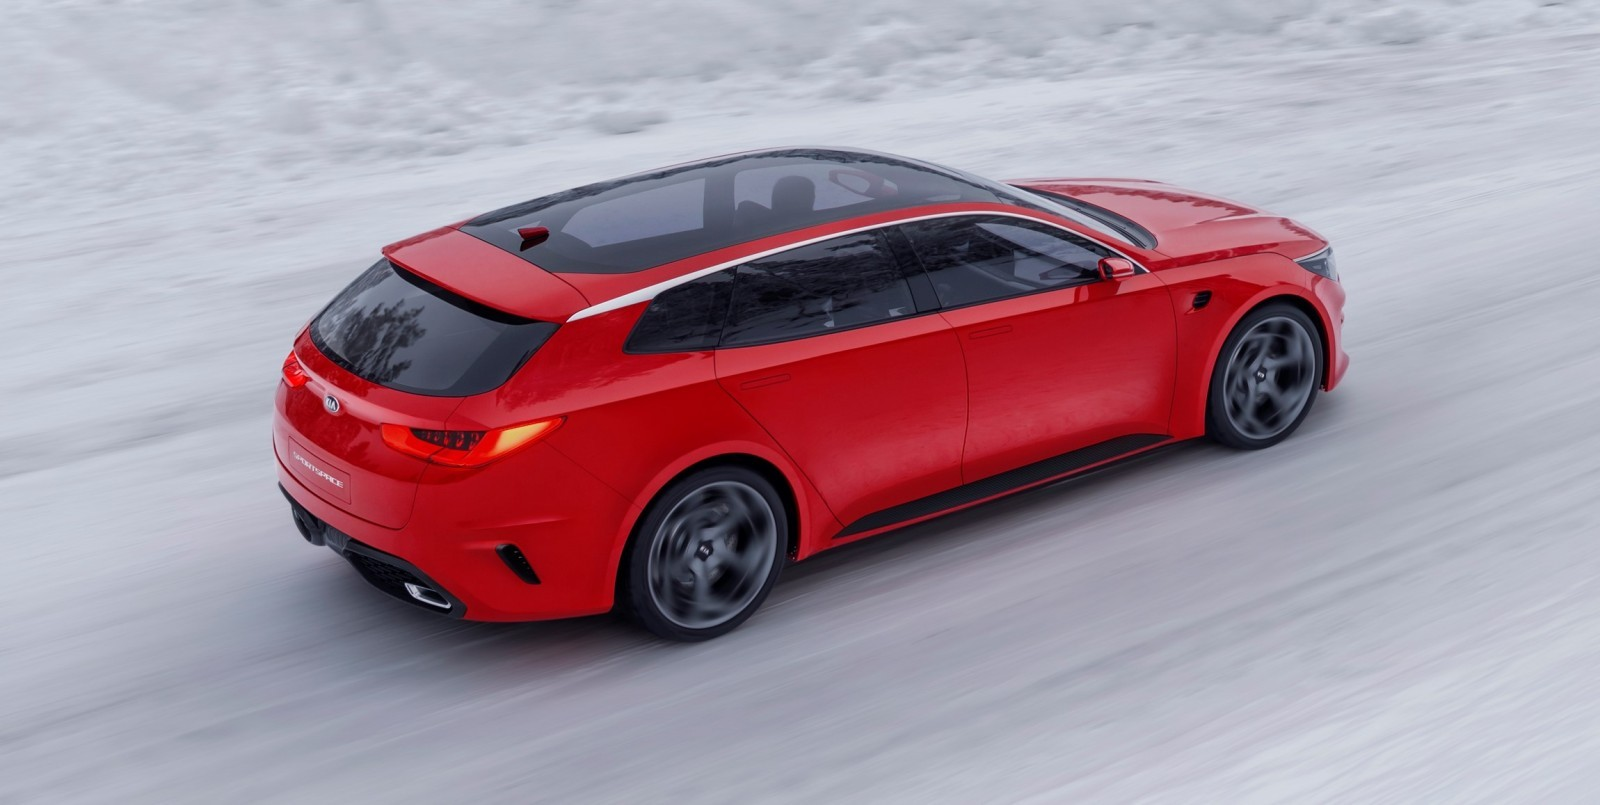 2015 Kia SPORTSPACE Concept - Latest Photos 8